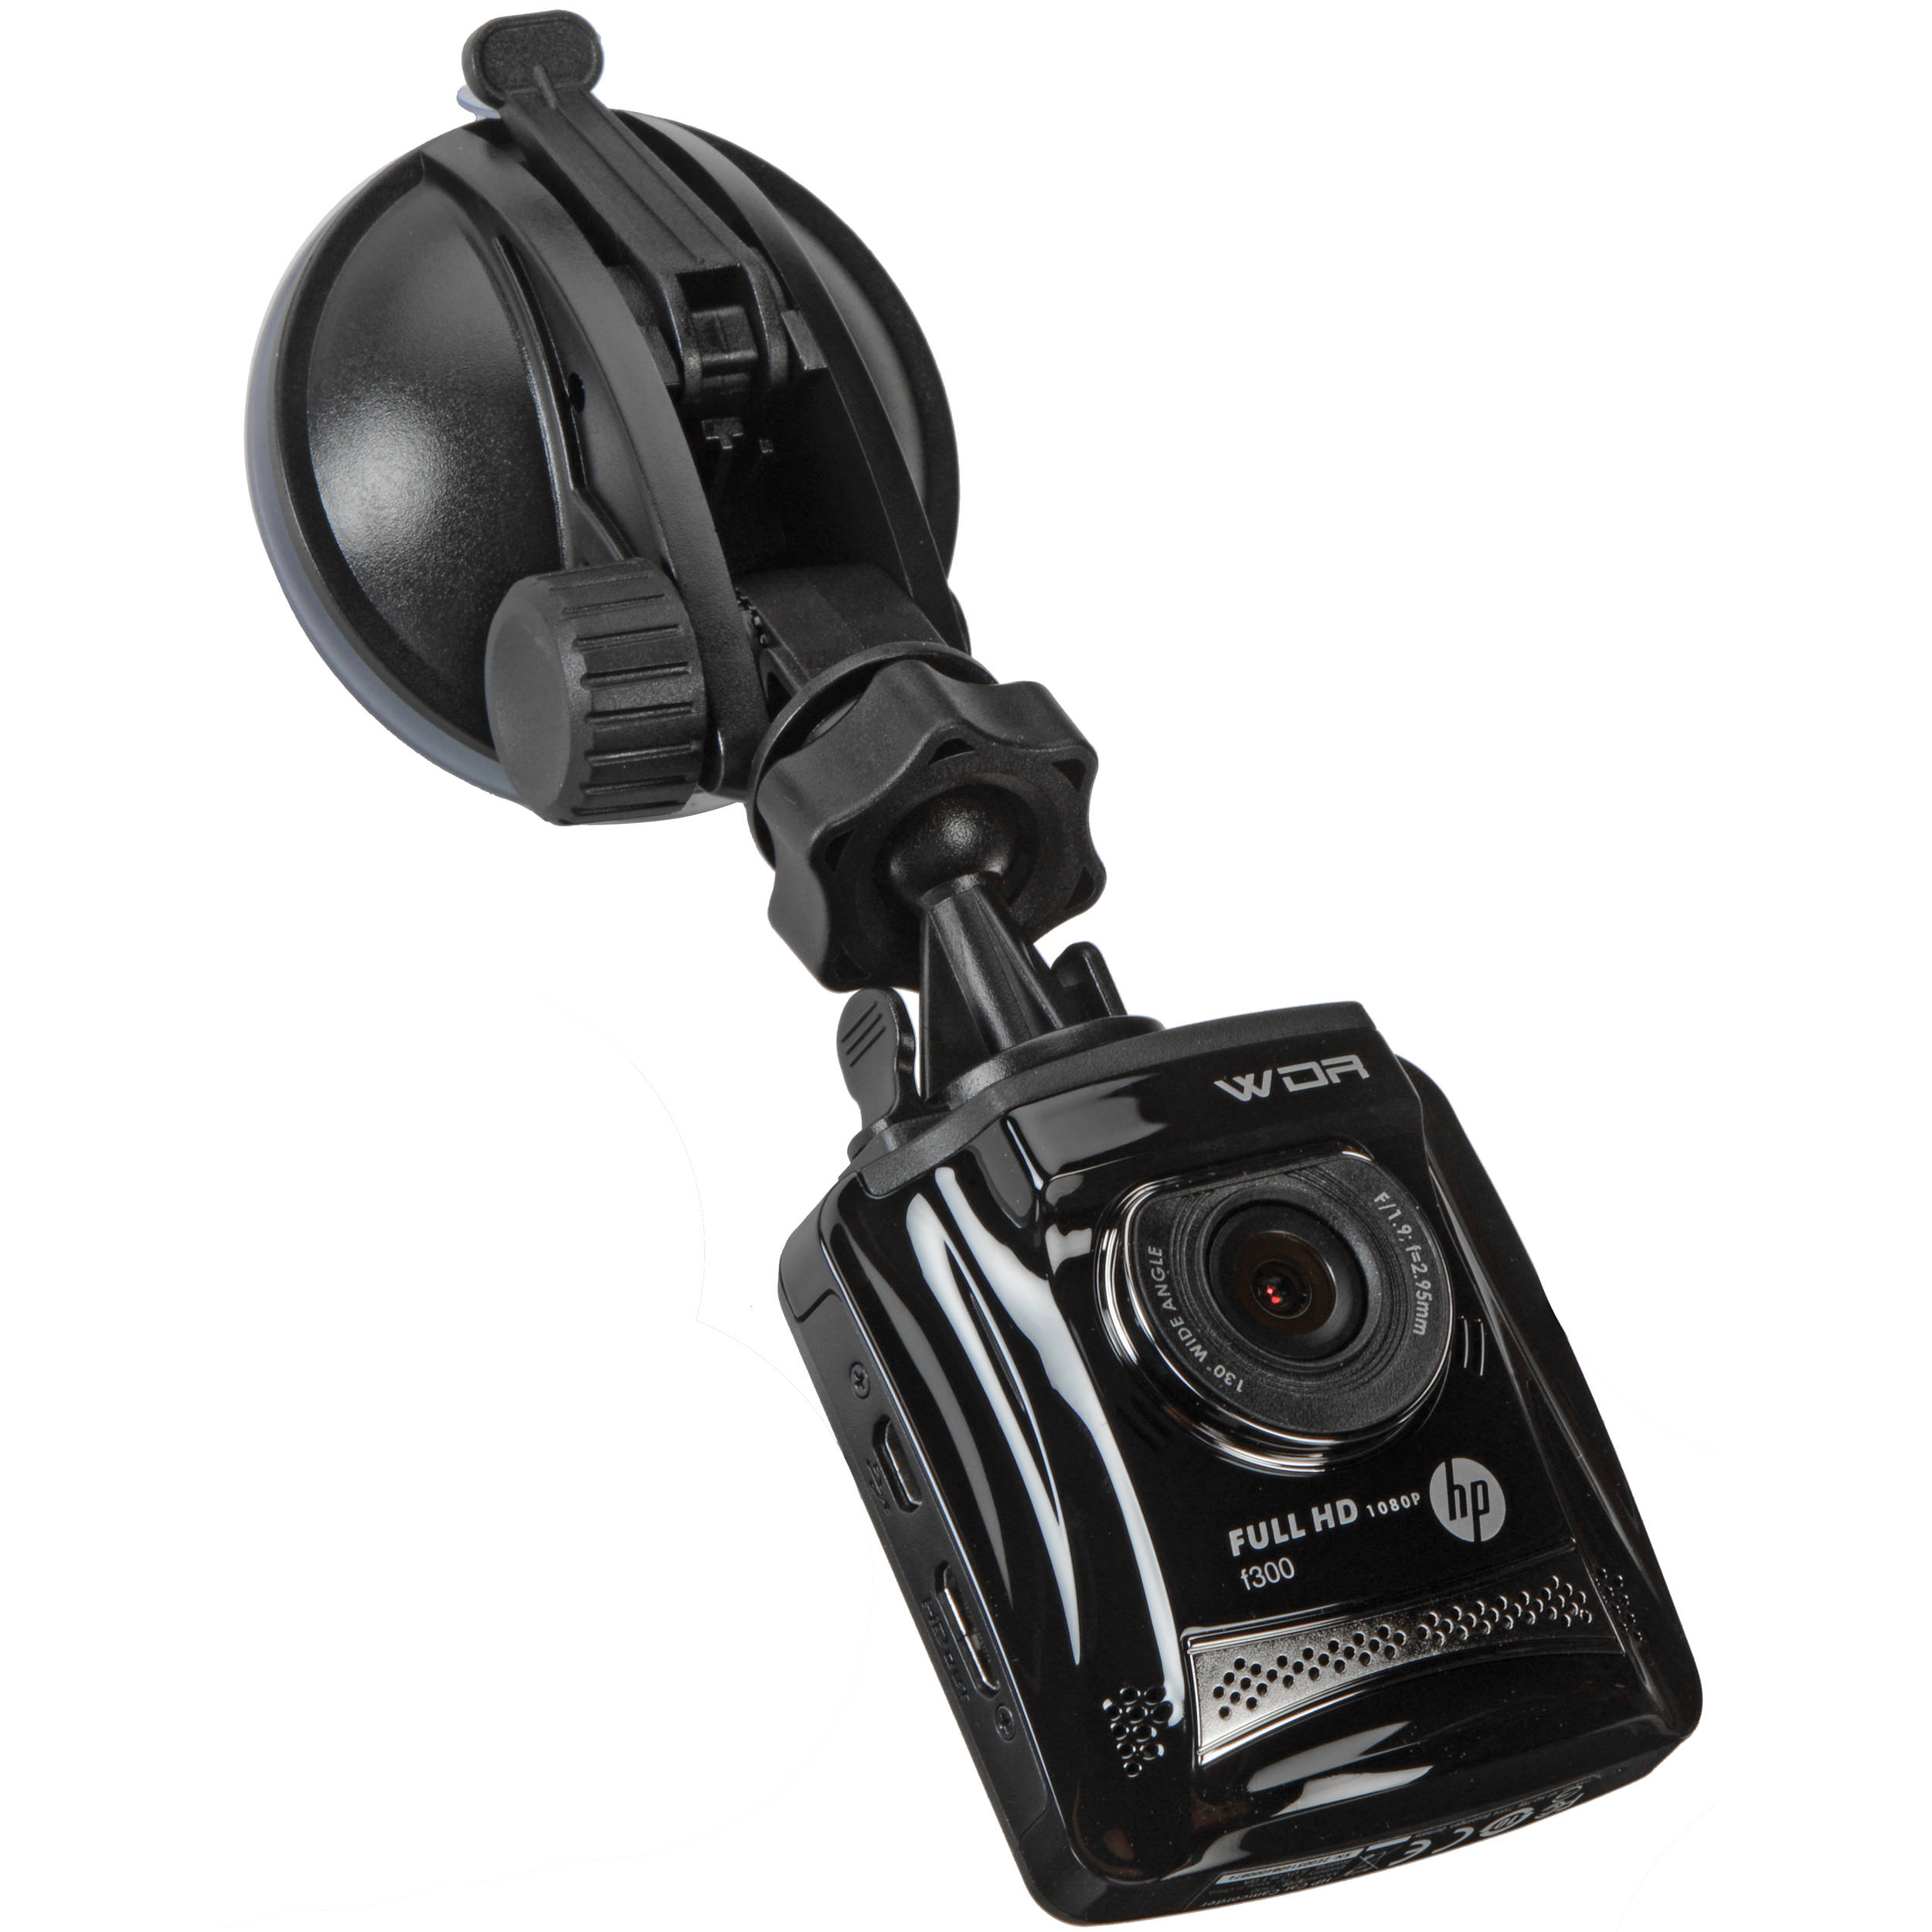 HP F300 Car Camcorder HP F300 B&H Photo Video